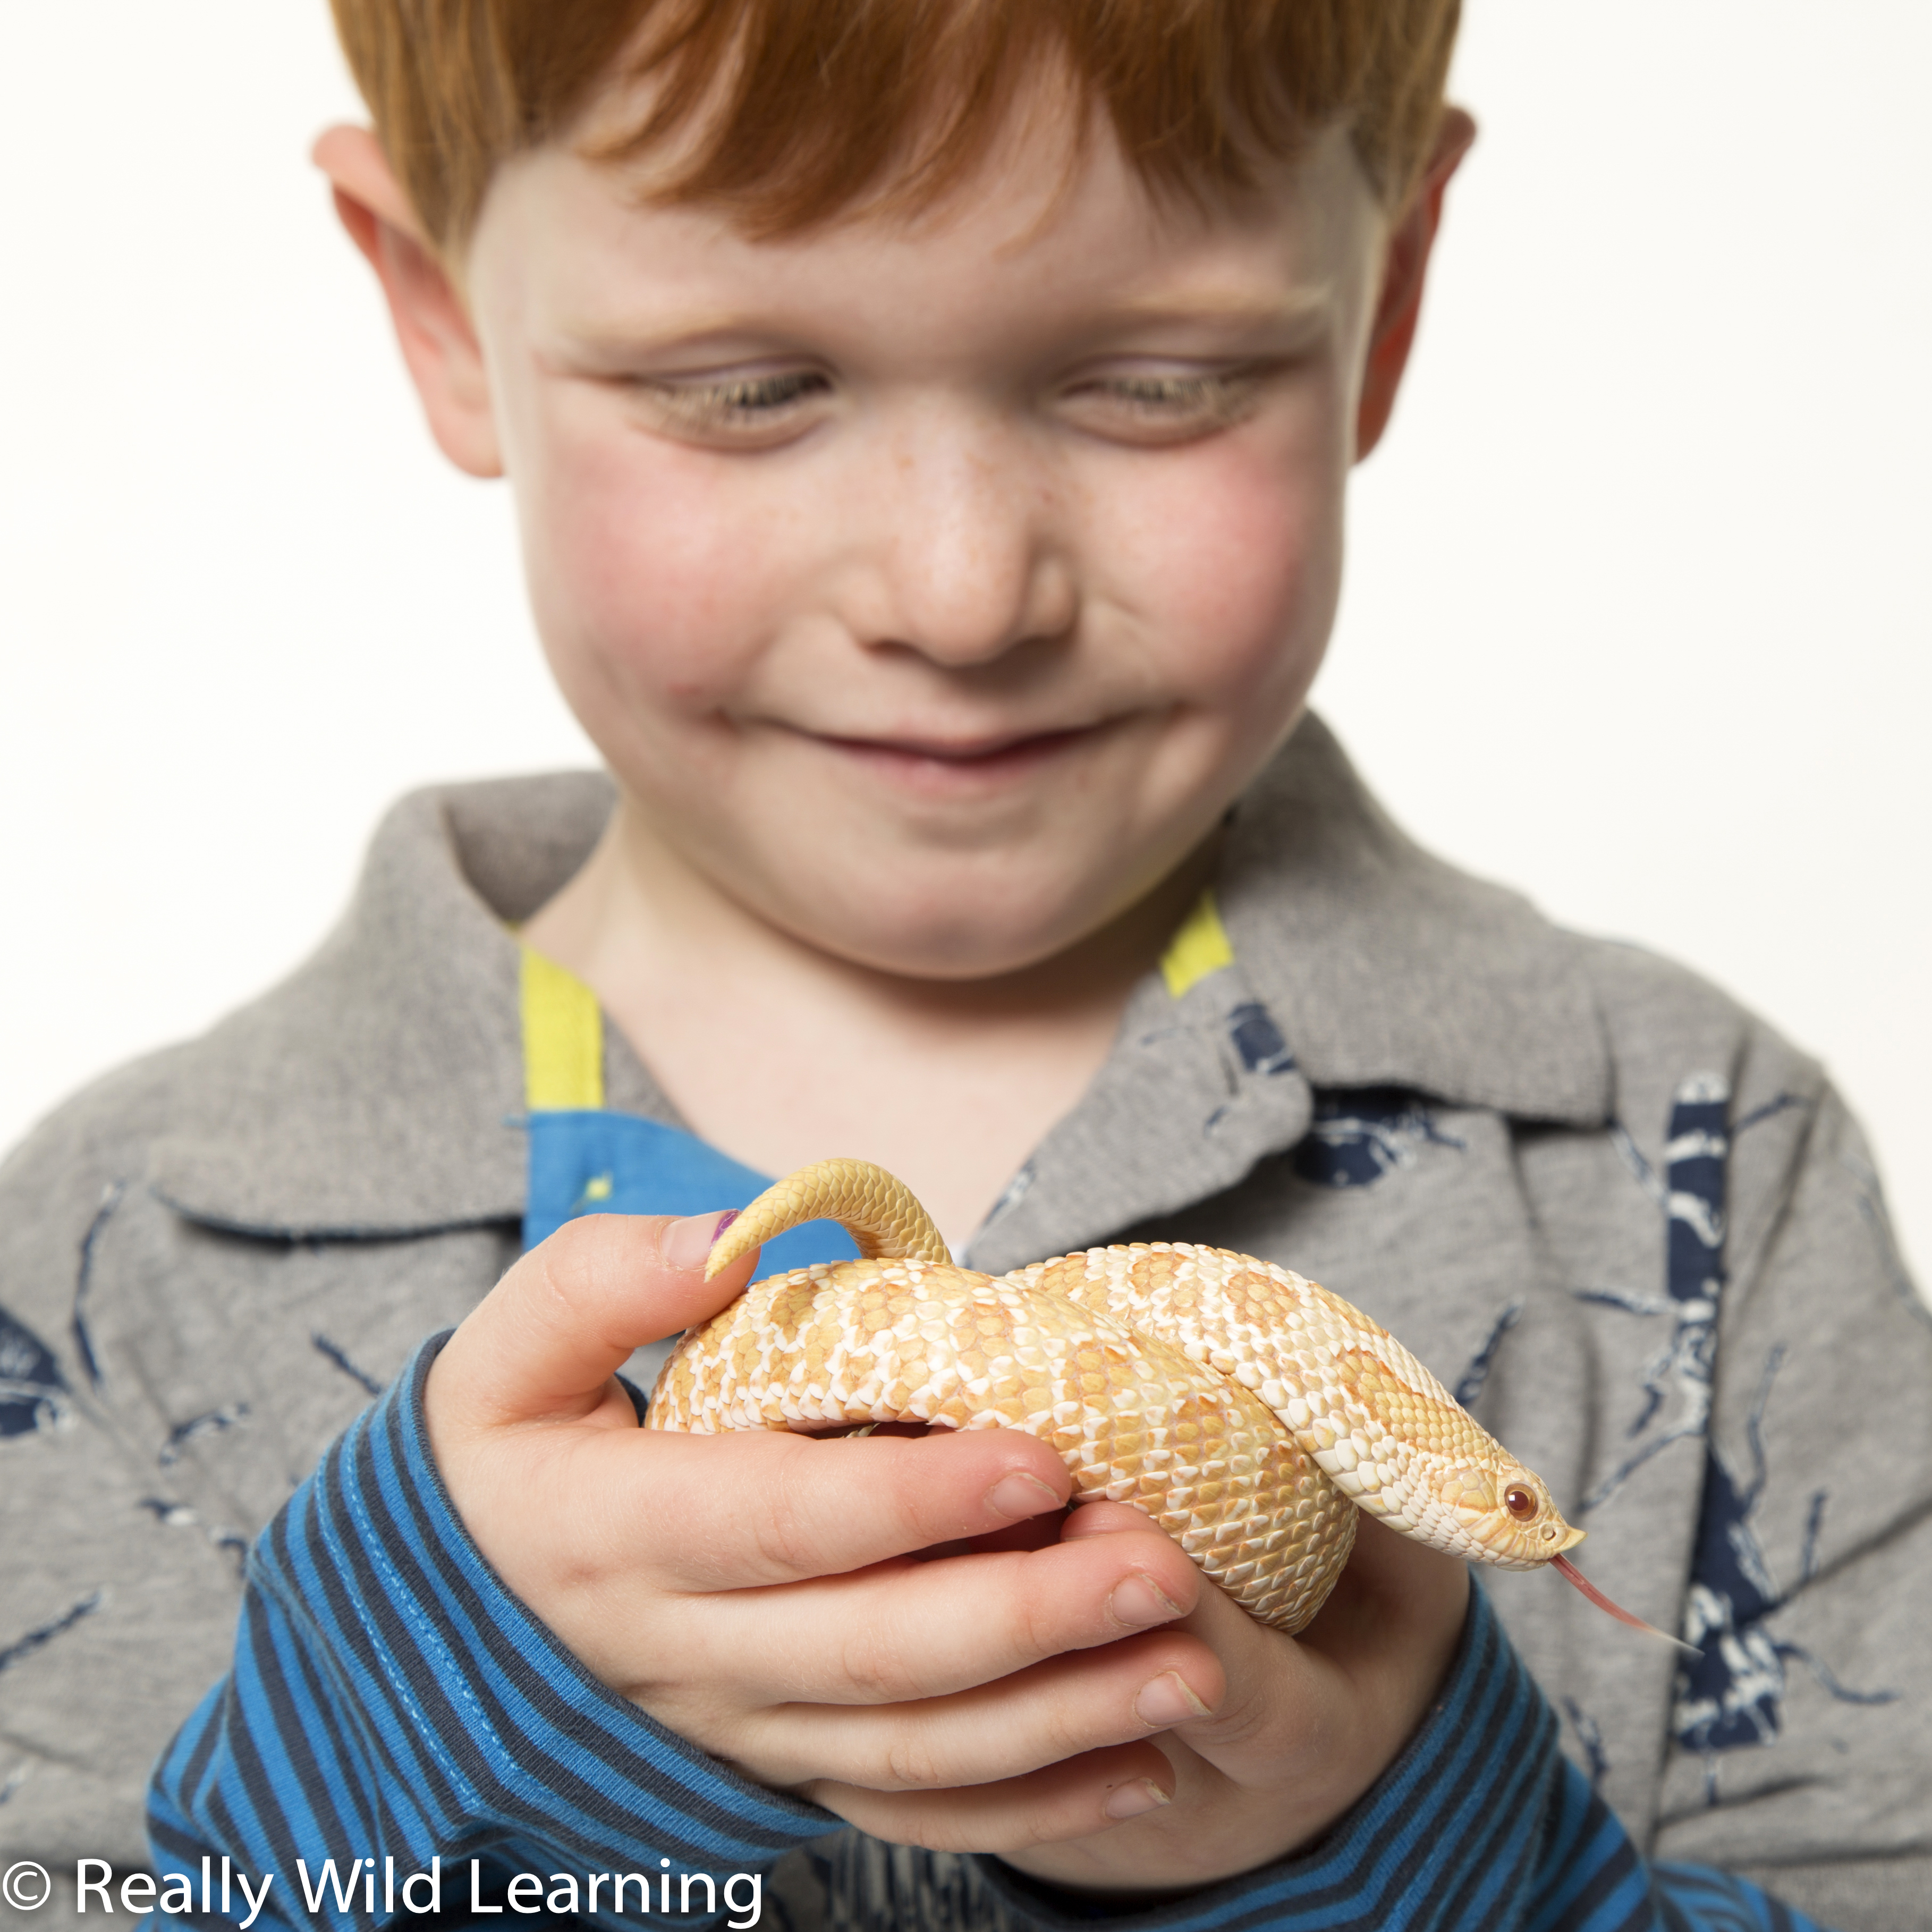 Educational Animal Event introducing you to some of nature's mischief makers - interactive presentation, amazing animal facts and the opportunity to meet the animals. Booking Essential. Limited Places